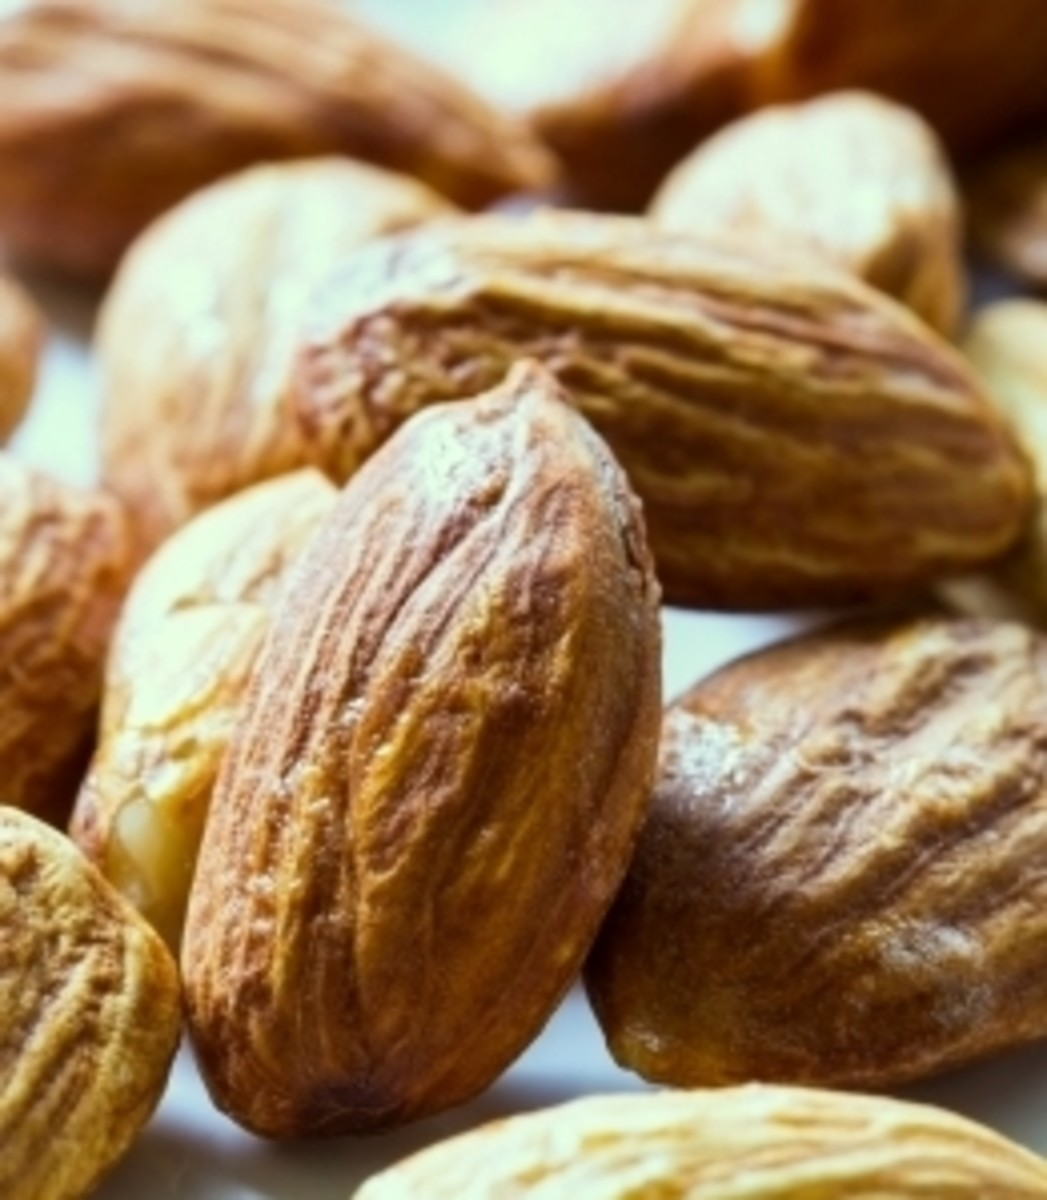 1 ounce almonds=6 grams of protein